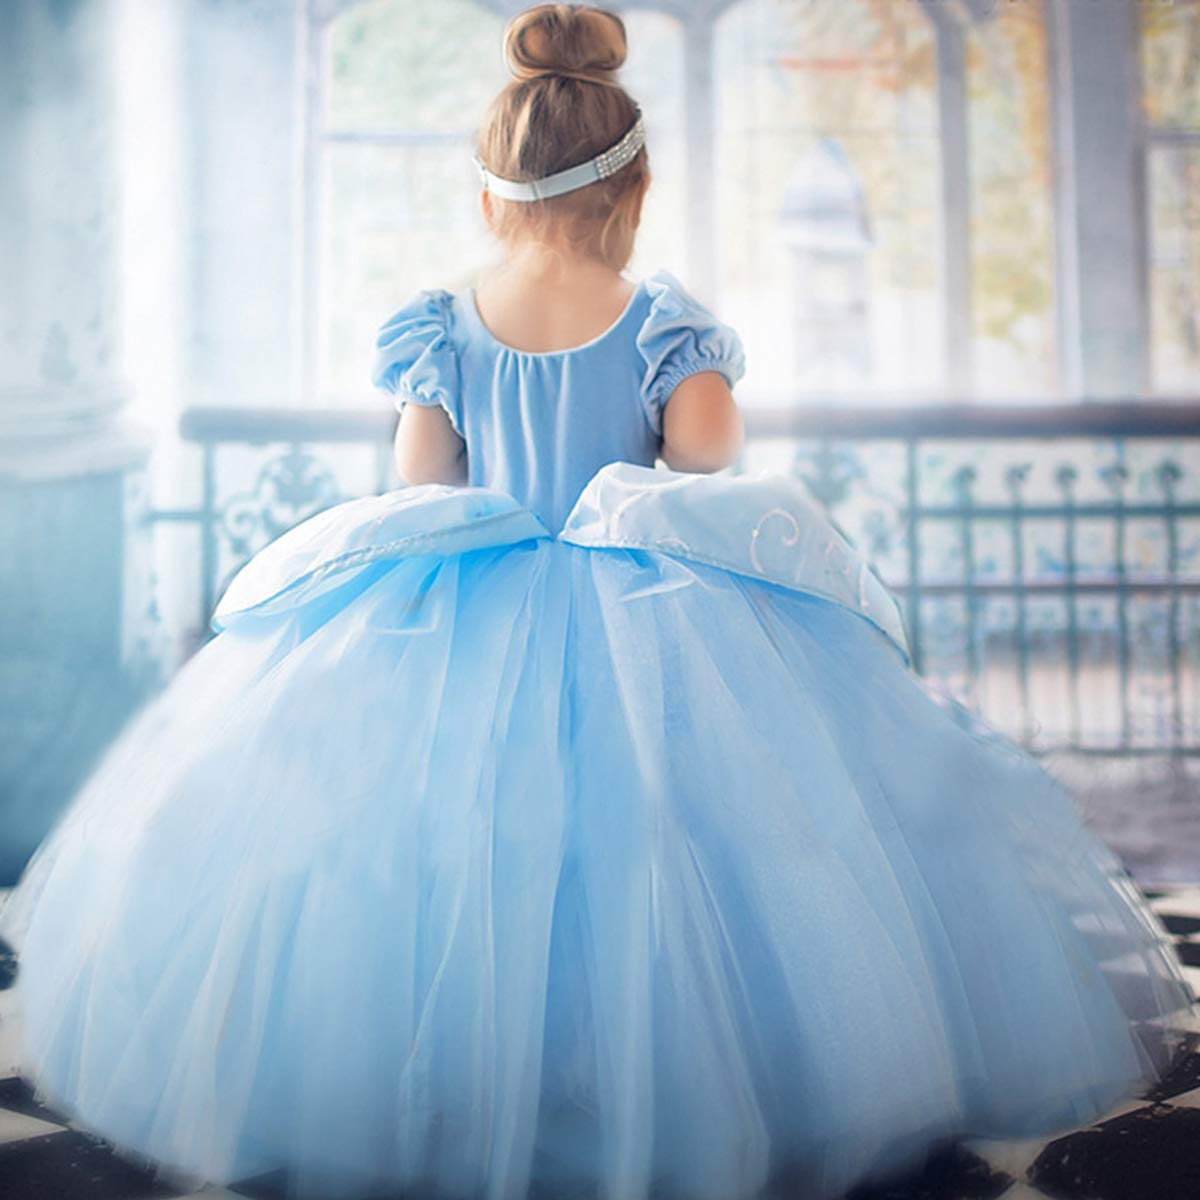 Cinderella Costumes Girls Princess Dress Up Fancy Halloween Christmas Party with Tiara and Choker Set Blue by TYHTYM (Image #5)